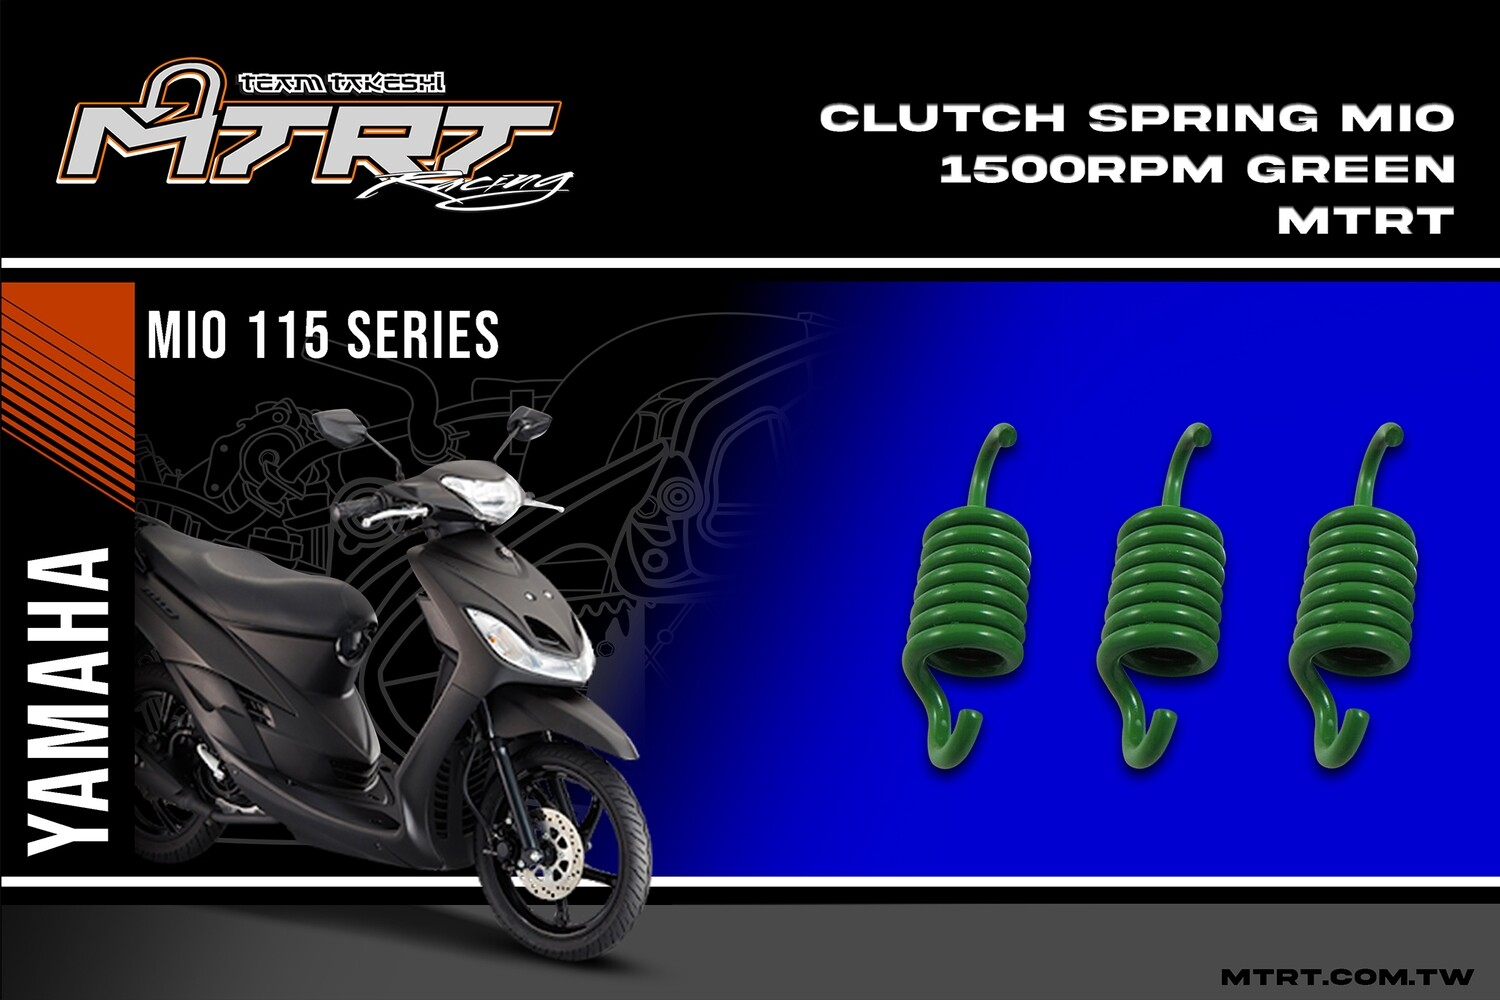 CLUTCH SPRING MIOSkydrive  1500RPM Green MTRT